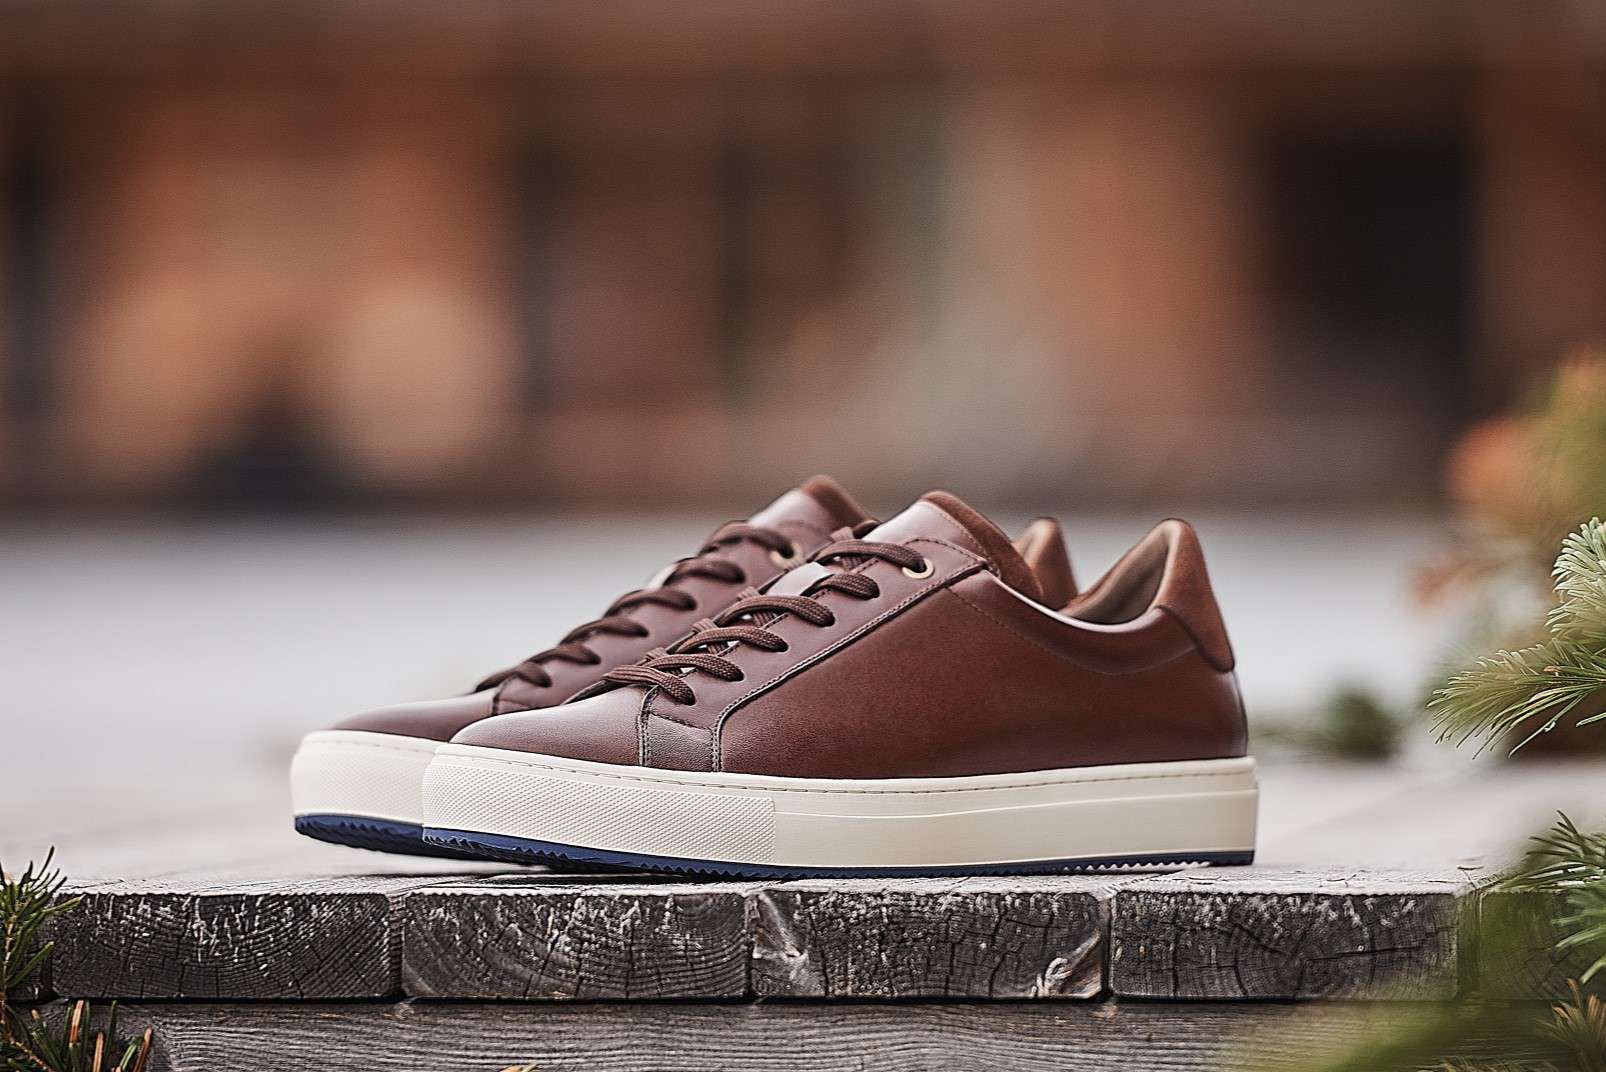 Boggi Milano sneakers in smooth brown leather